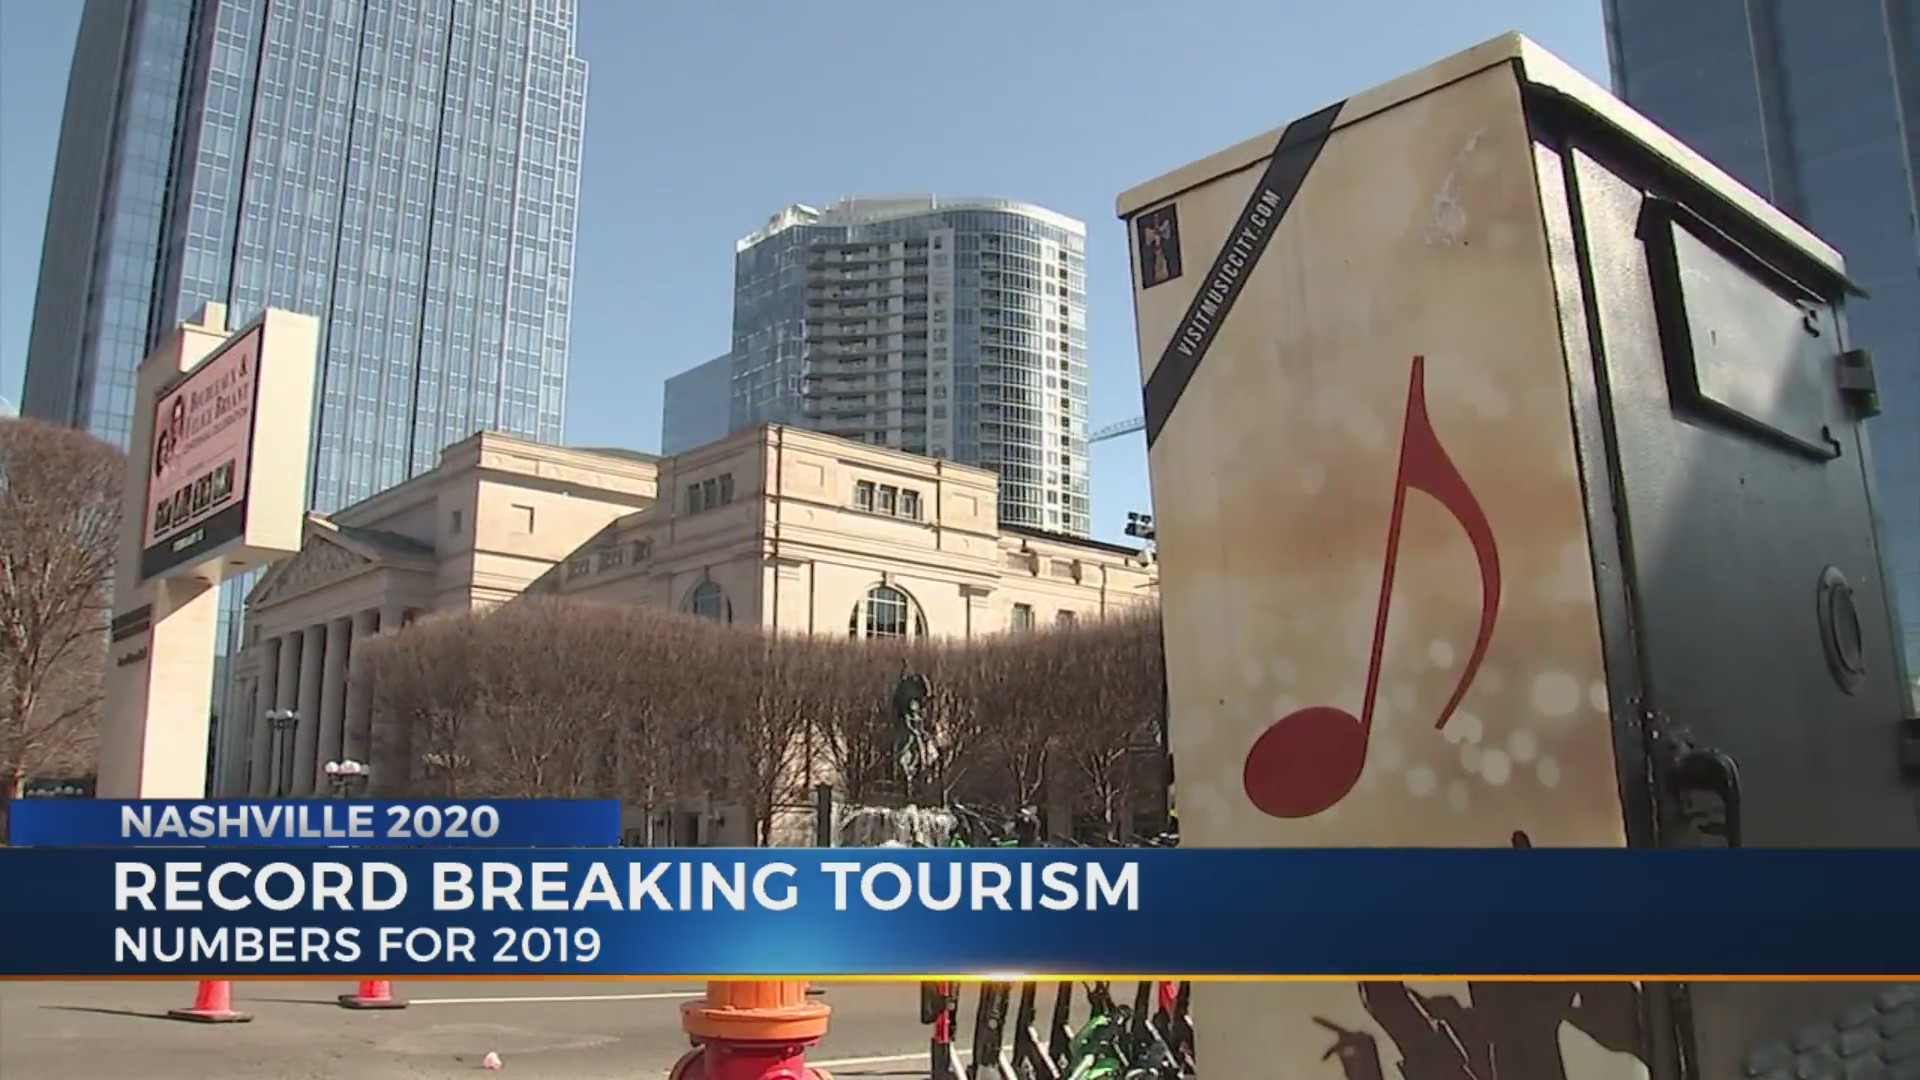 Nashville 2020: Record breaking tourism